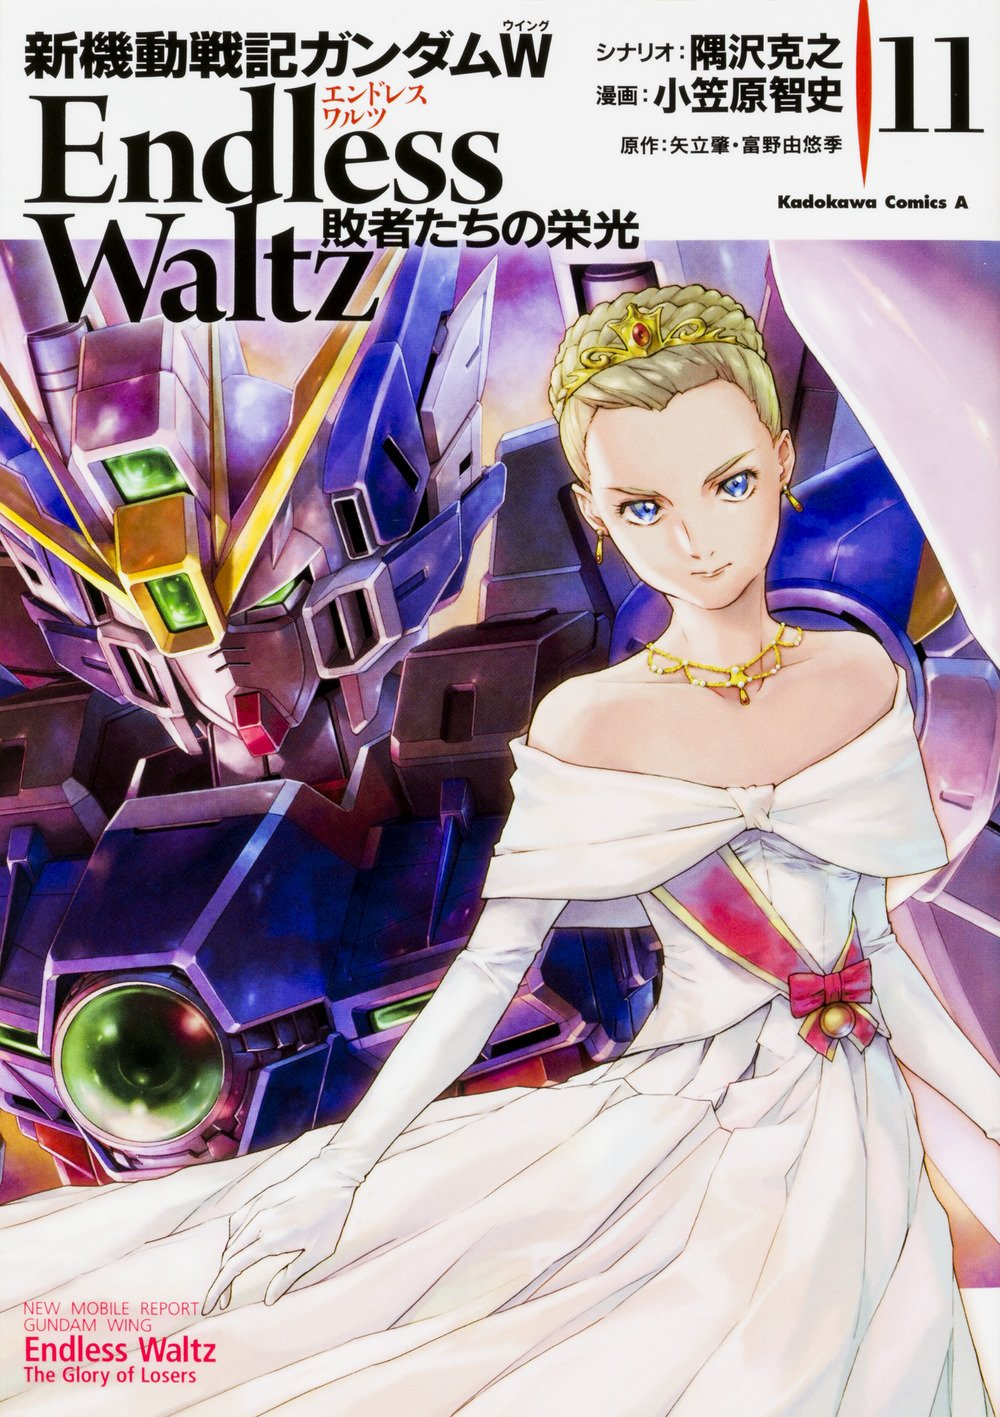 File:New Mobile Report Gundam Wing Glory of losers Vol.11.jpg